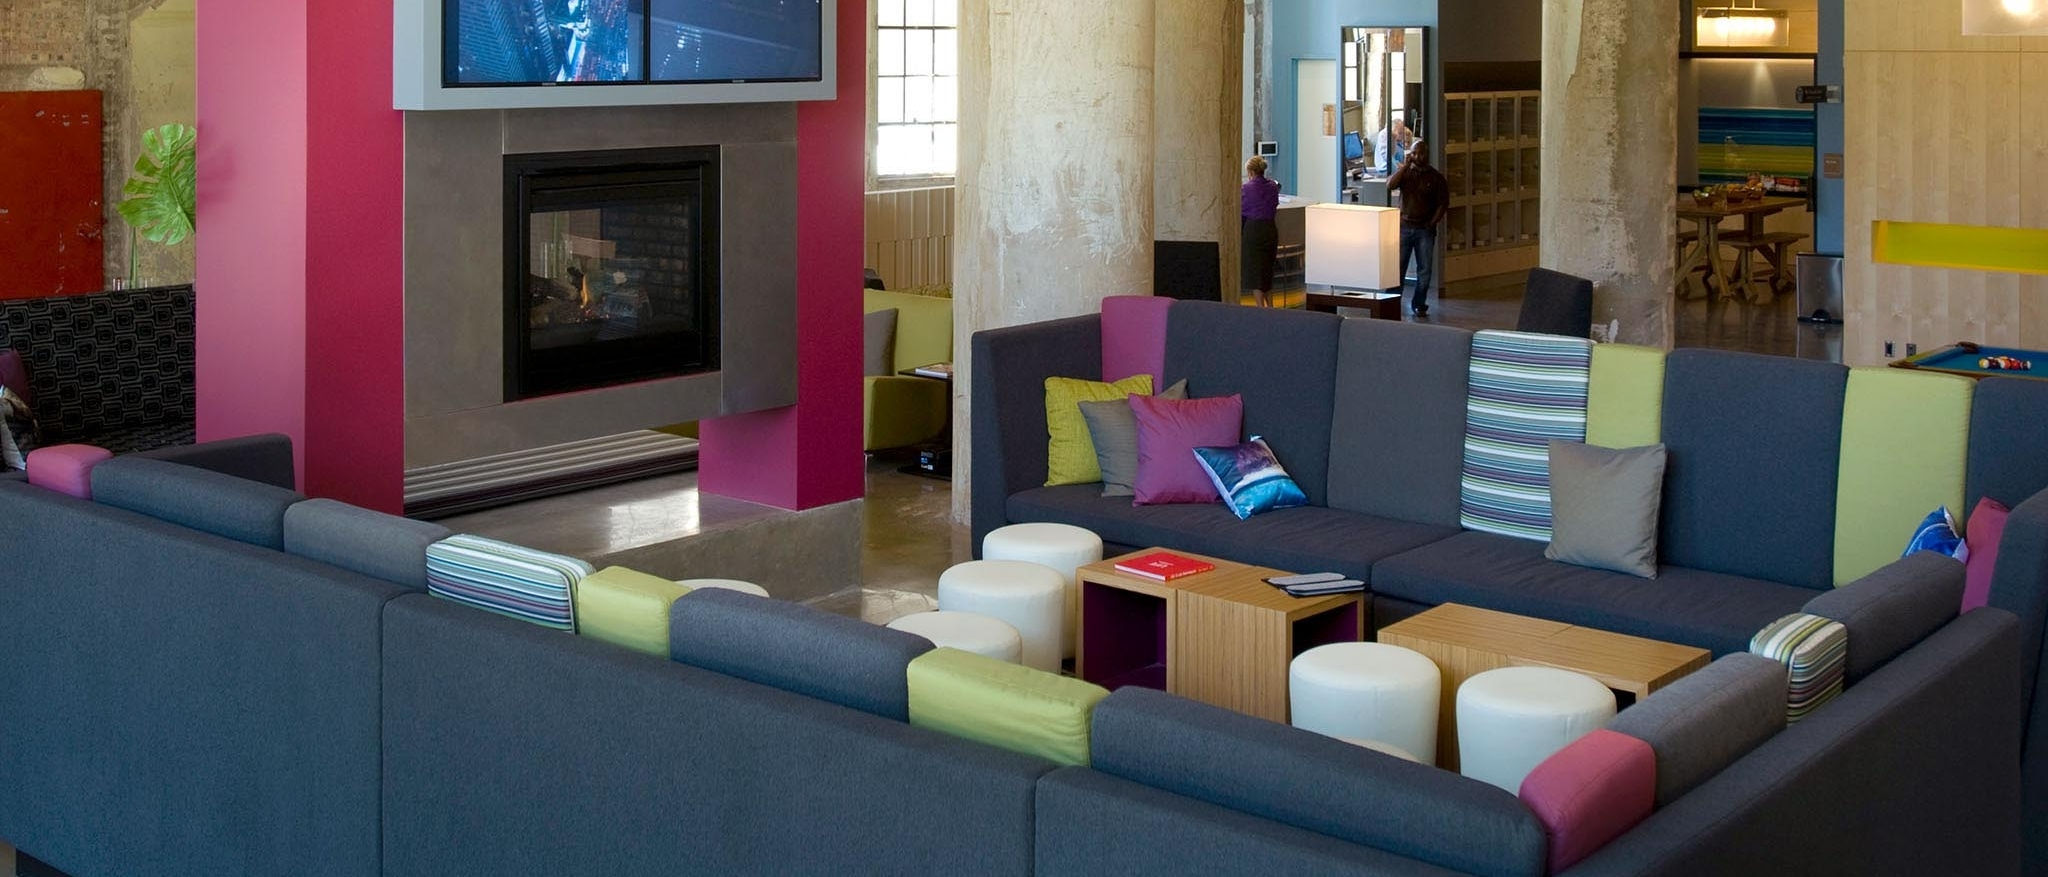 Aloft Dallas Downtown - Re:mix lounge